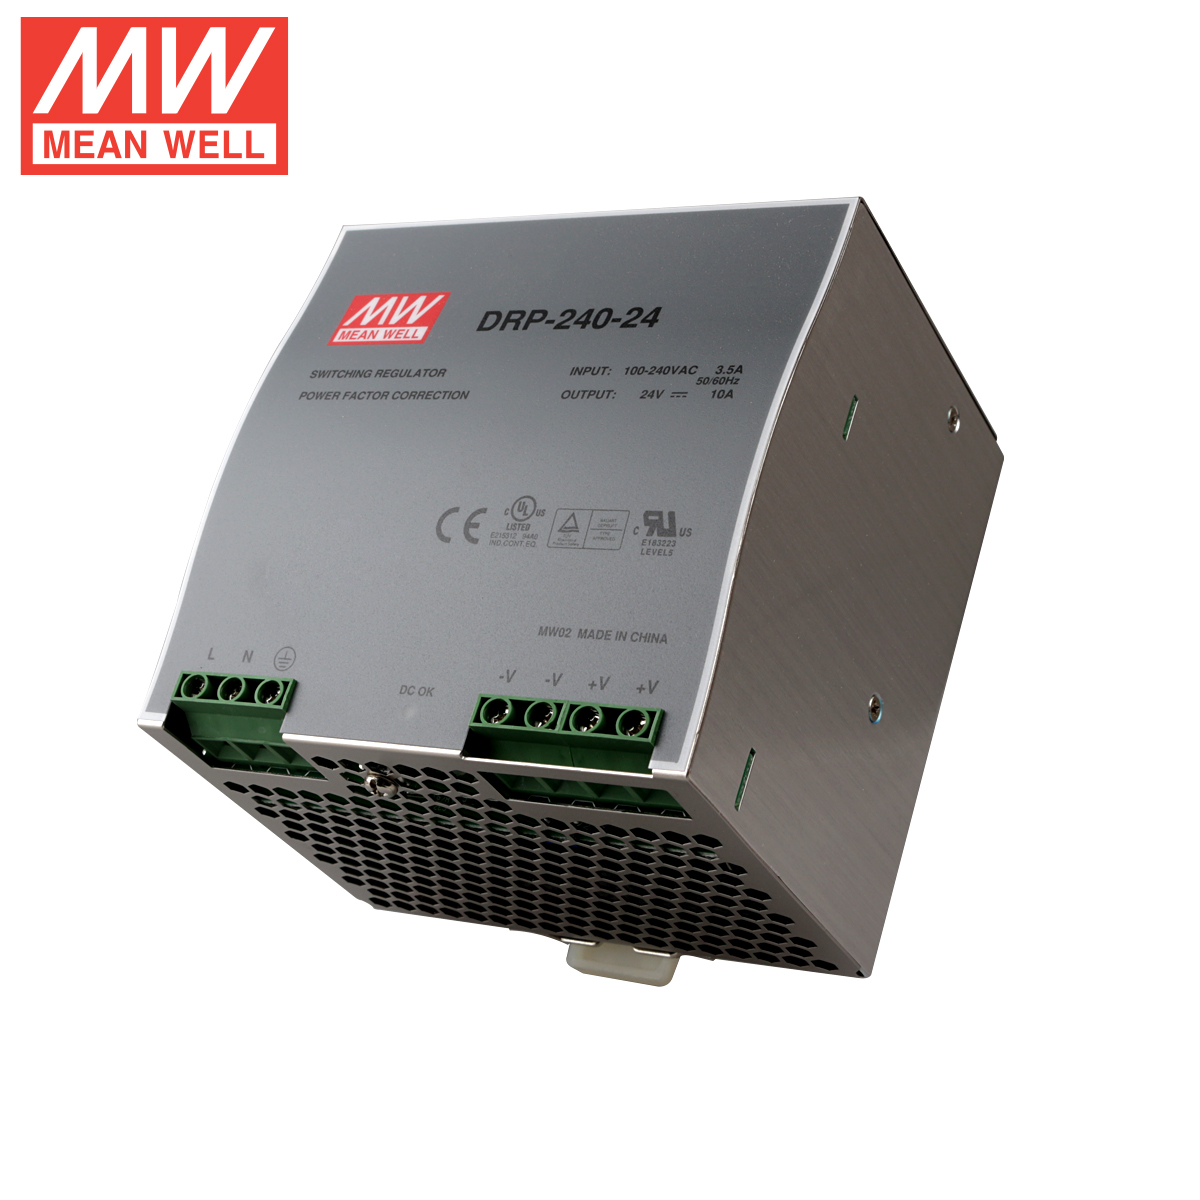 Taiwan meanwell switching power supply 24v10a 240W industrial grade track rail power drp-240-24